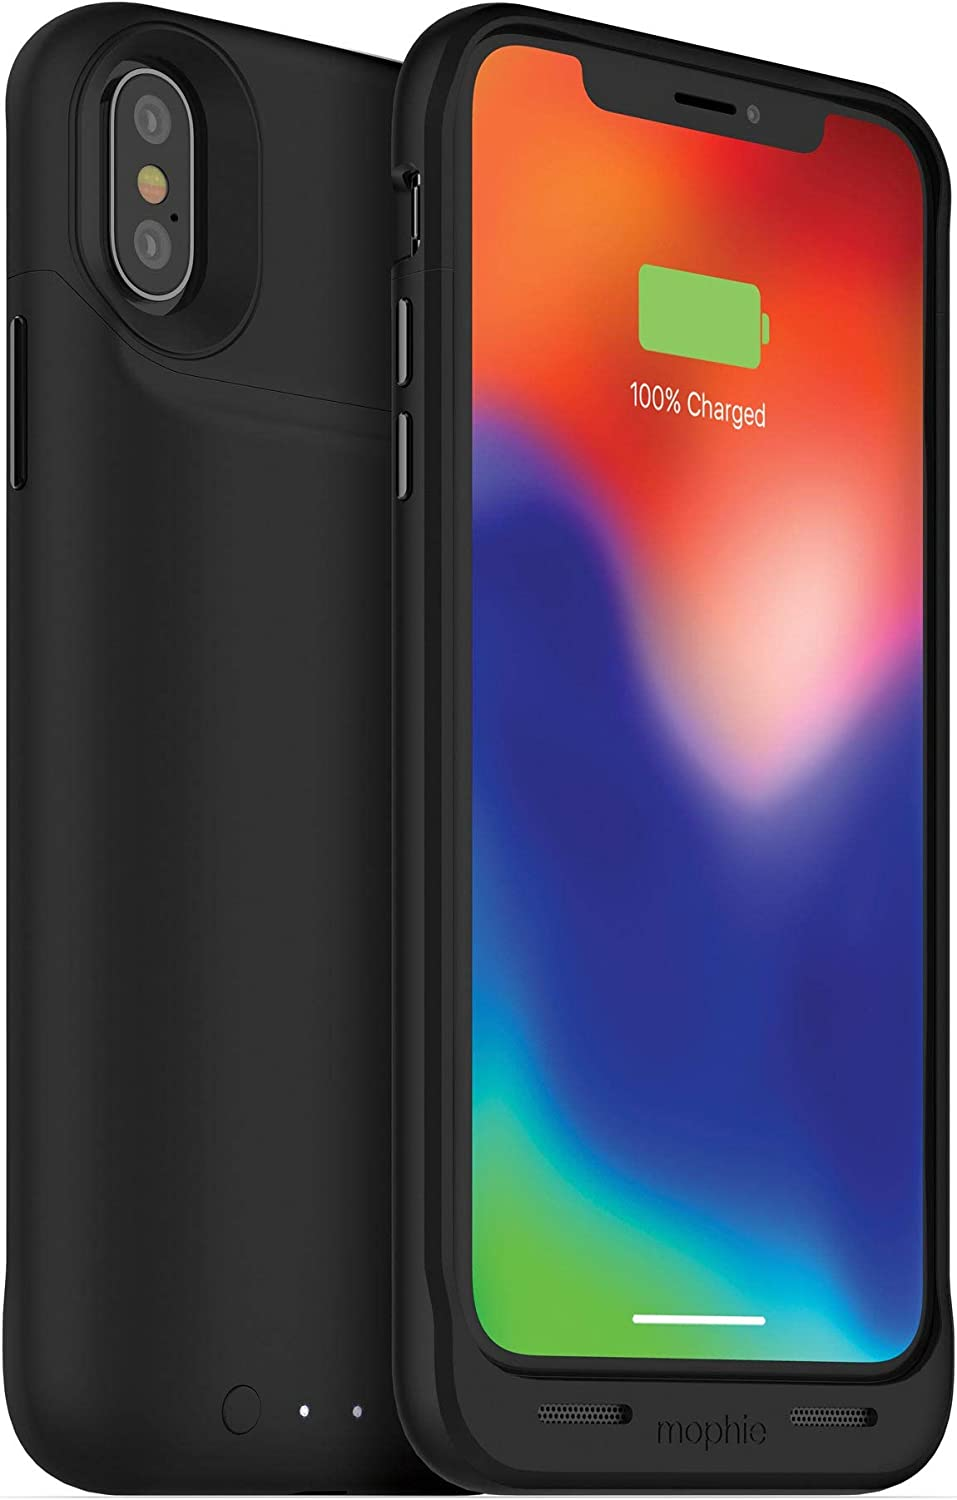 Amazon Com Mophie Juice Pack Wireless Qi Wireless Charging Protective Battery Case Made For Apple Iphone X Black 401002004 Cases.com offers a wide selection of mophie charging cases. mophie juice pack wireless qi wireless charging protective battery case made for apple iphone x black 401002004